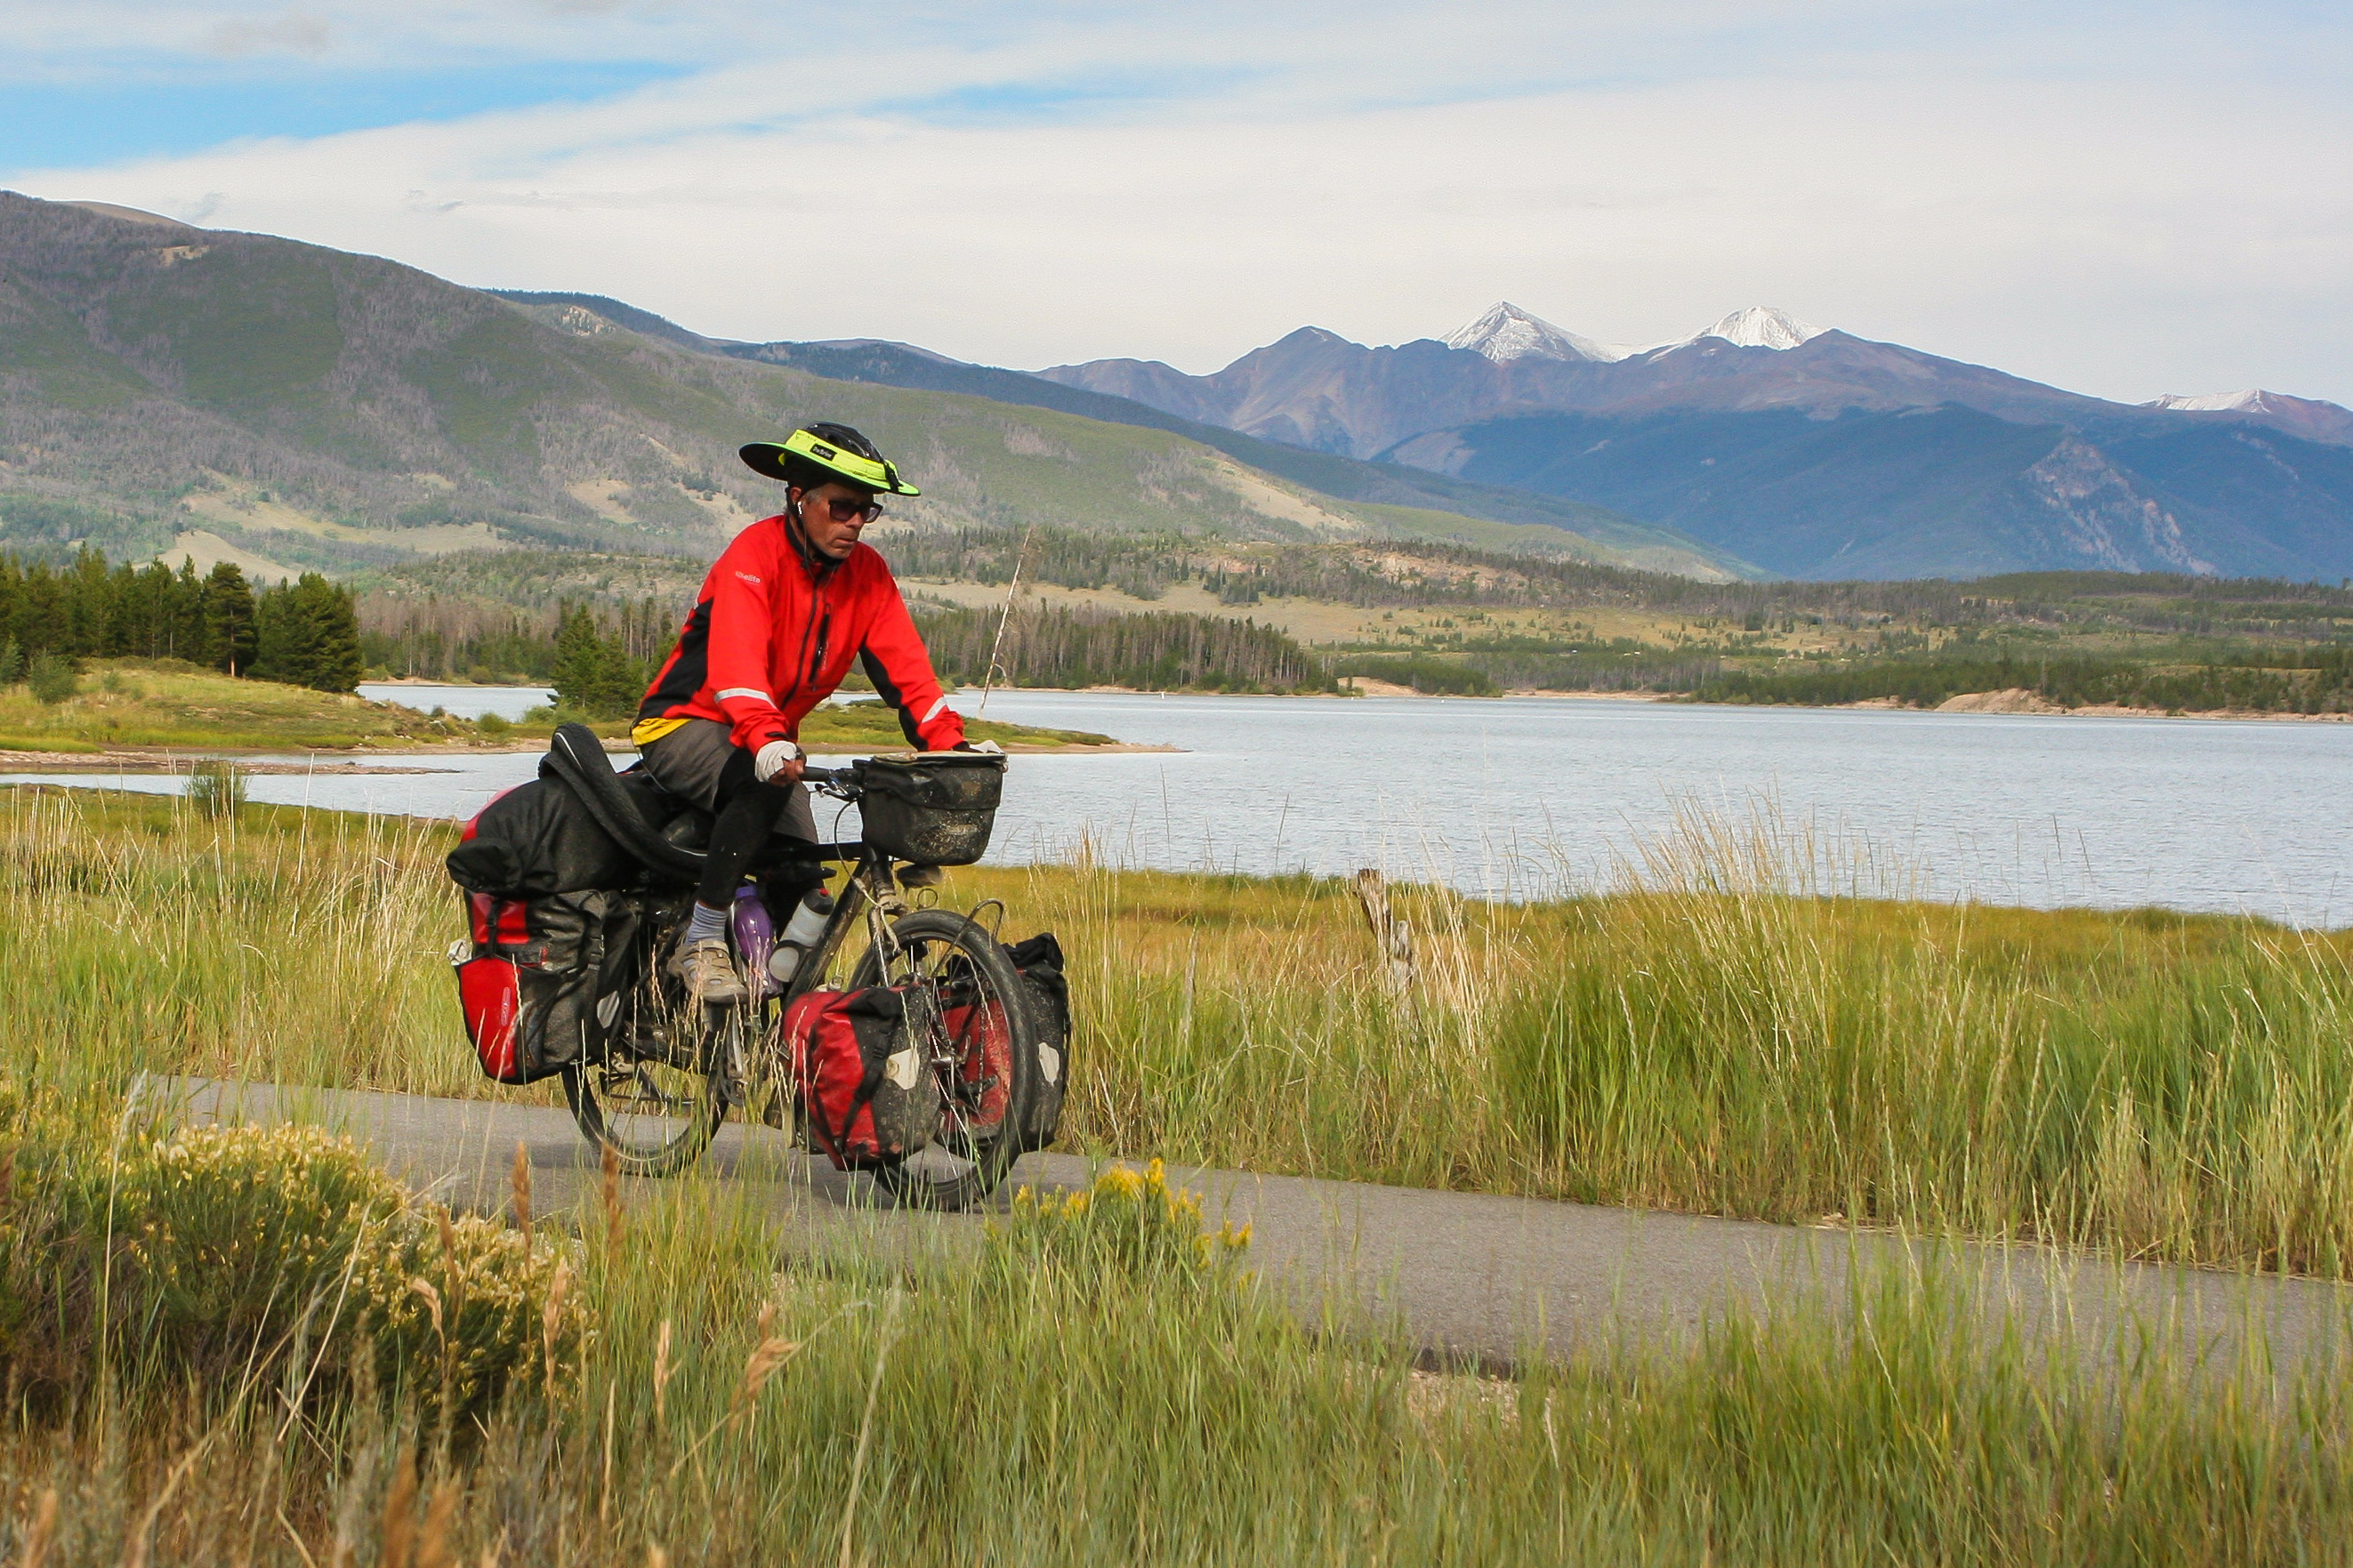 Biking the Great Divide: Colorado